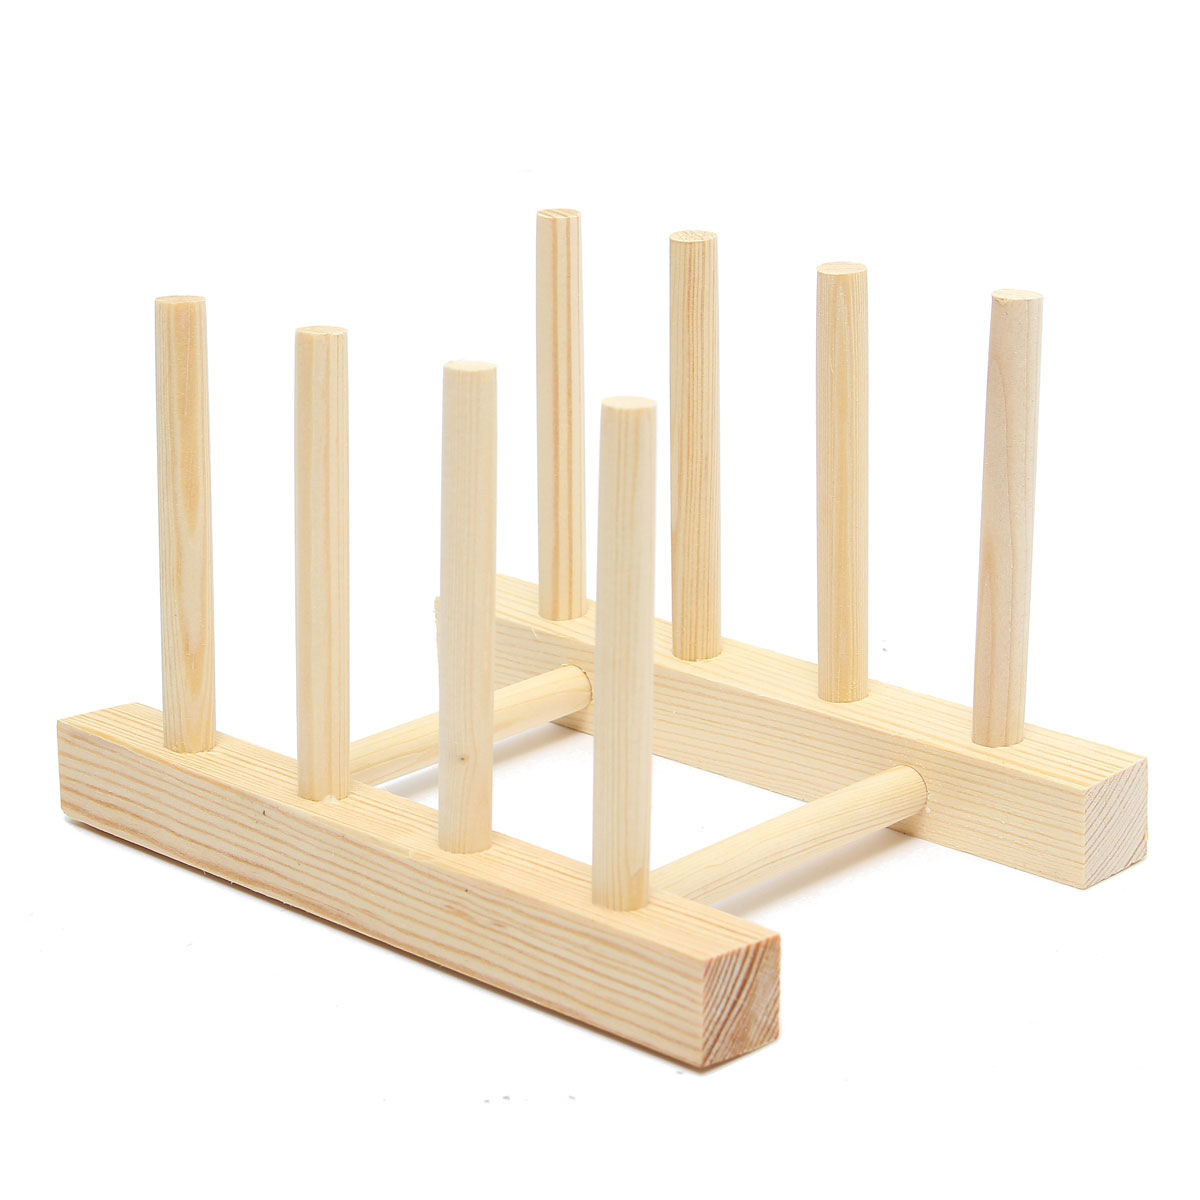 Wonderful image of Kitchen Wooden Sink Dish Plate Drainer Books Rack Holders Stand Plates  with #9C7830 color and 1200x1200 pixels